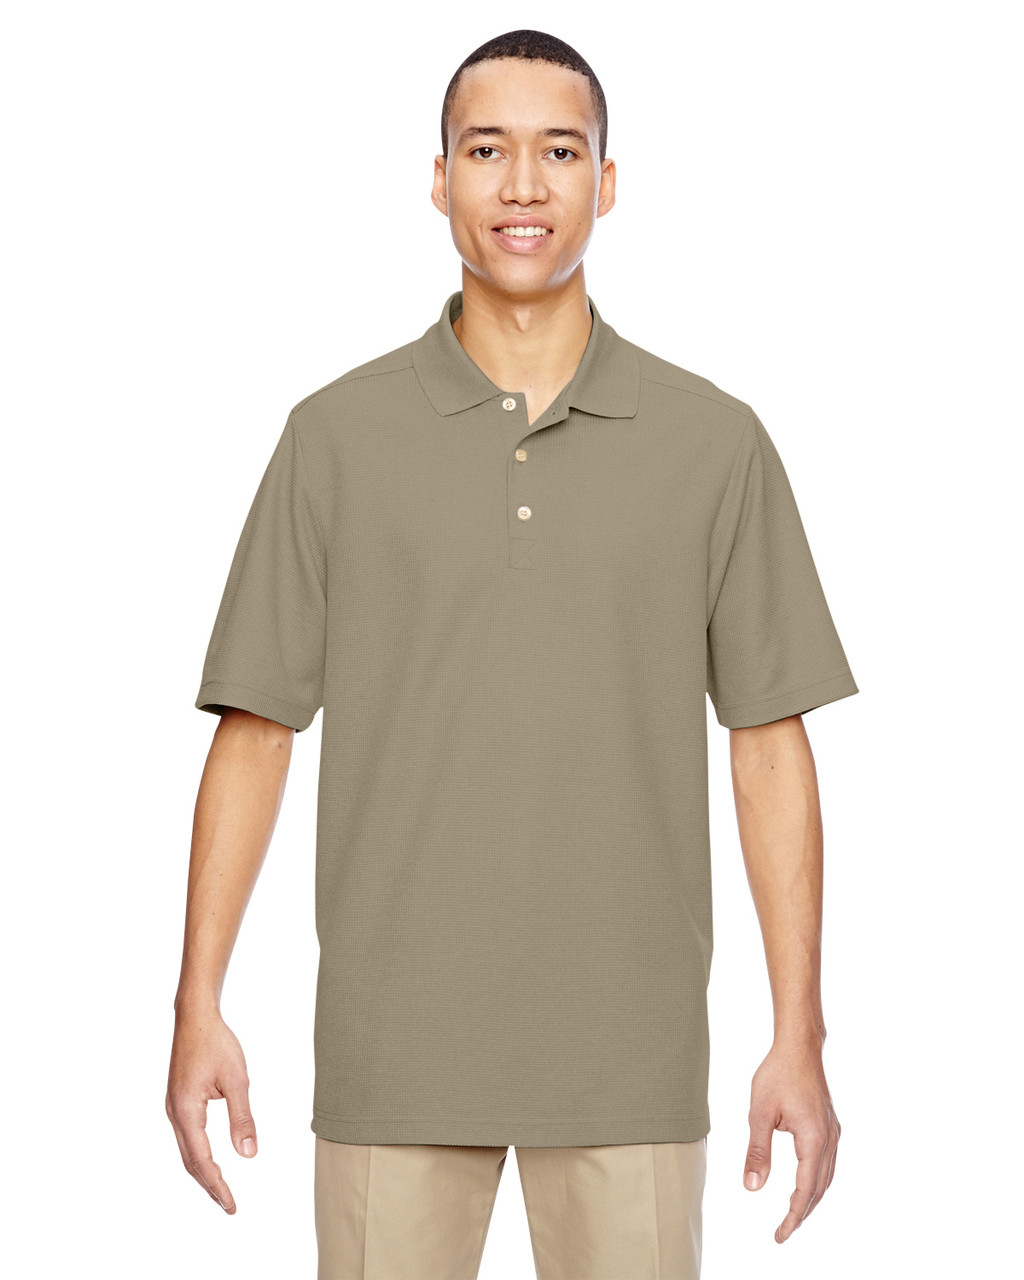 Stone - 85121 Ash City - North End Excursion Nomad Performance Waffle Polo Shirt | Blankclothing.ca